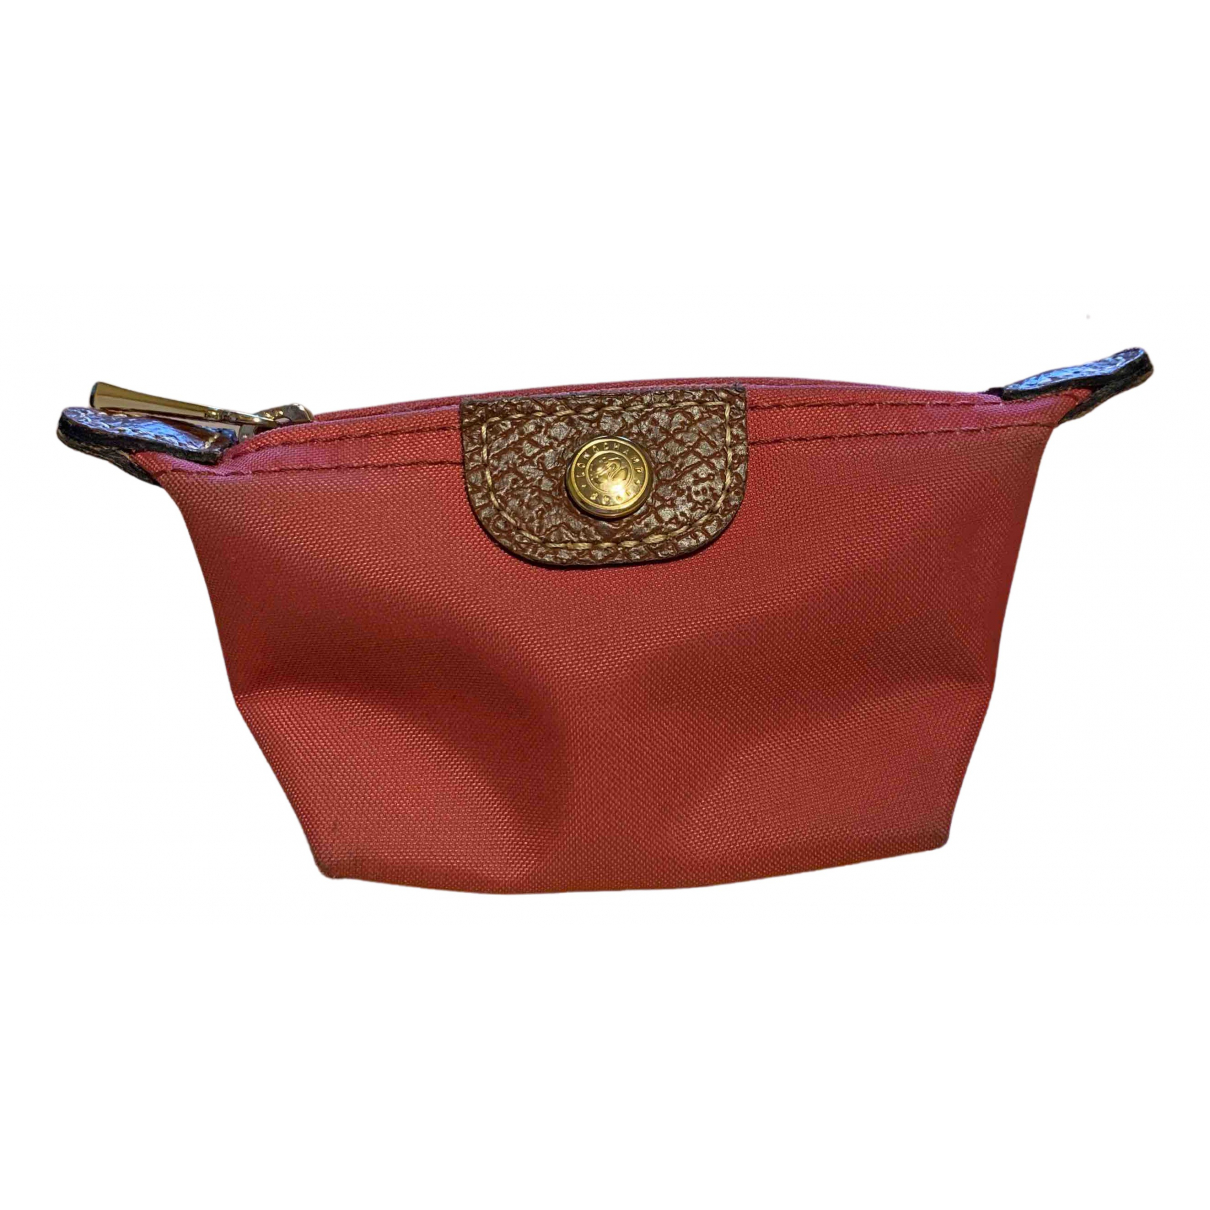 Longchamp N Pink Cloth wallet for Women N